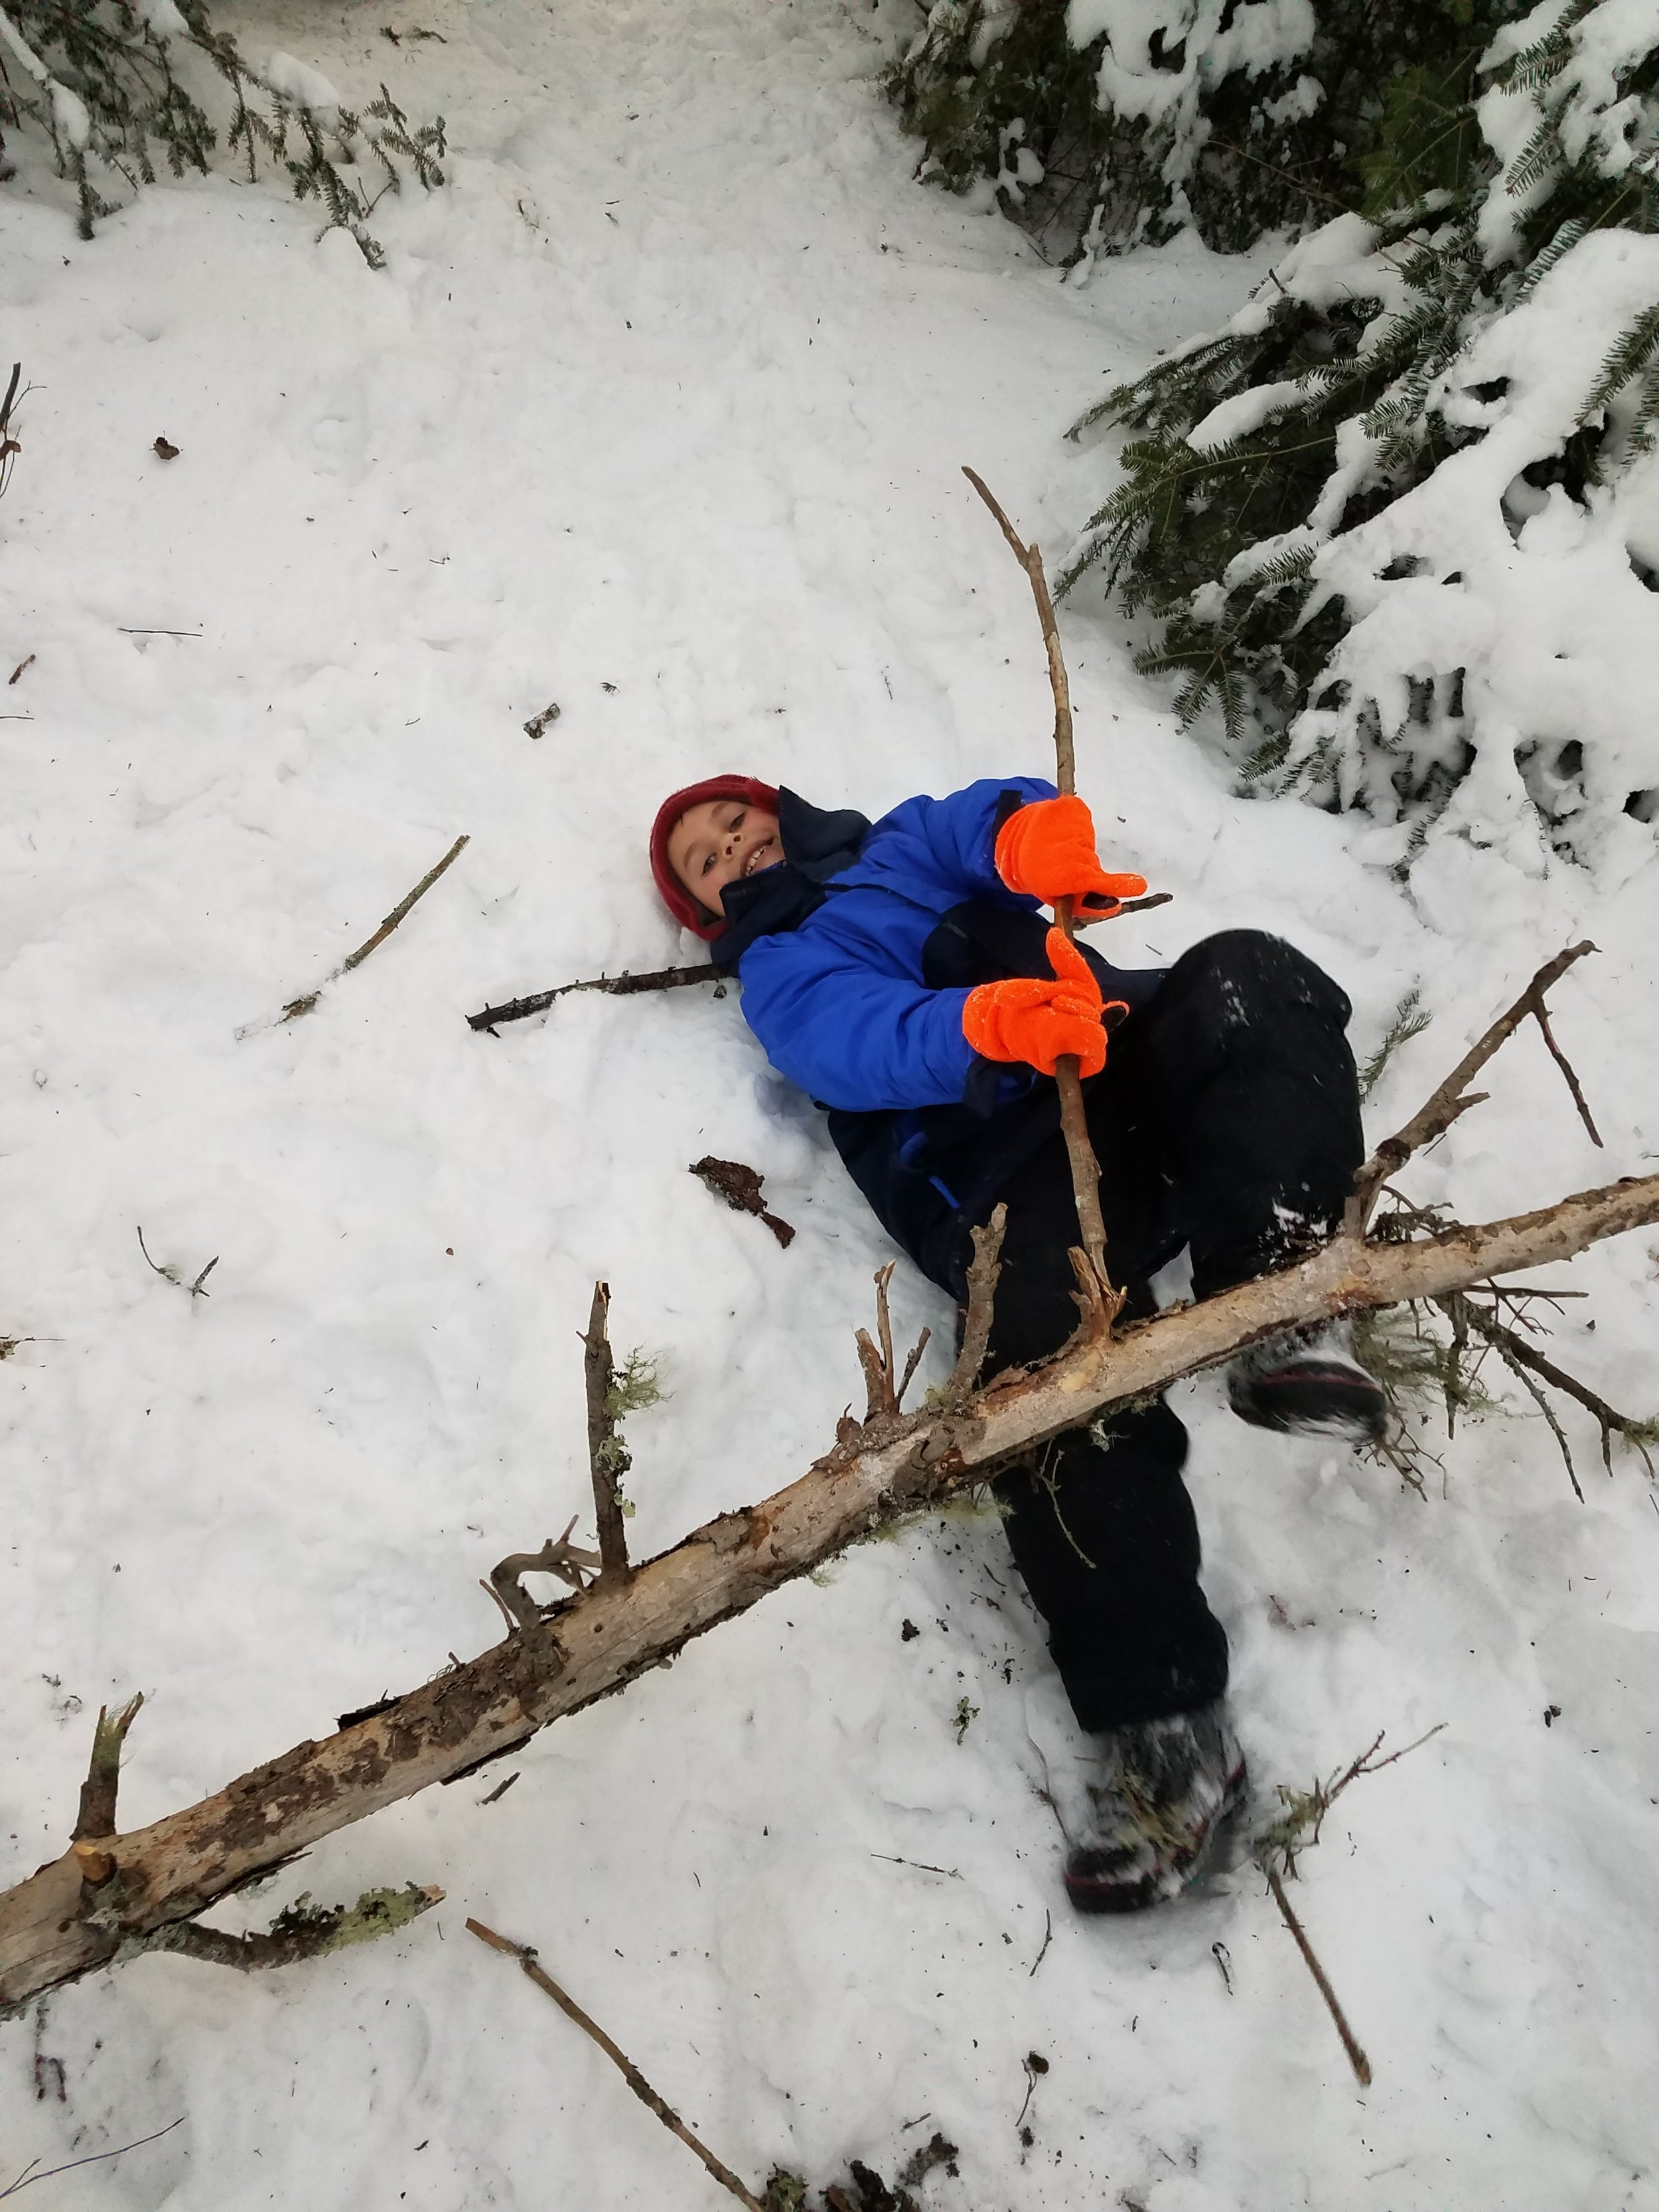 Sometimes carrying sticks for your shelter can be hard and you just have to fall over!